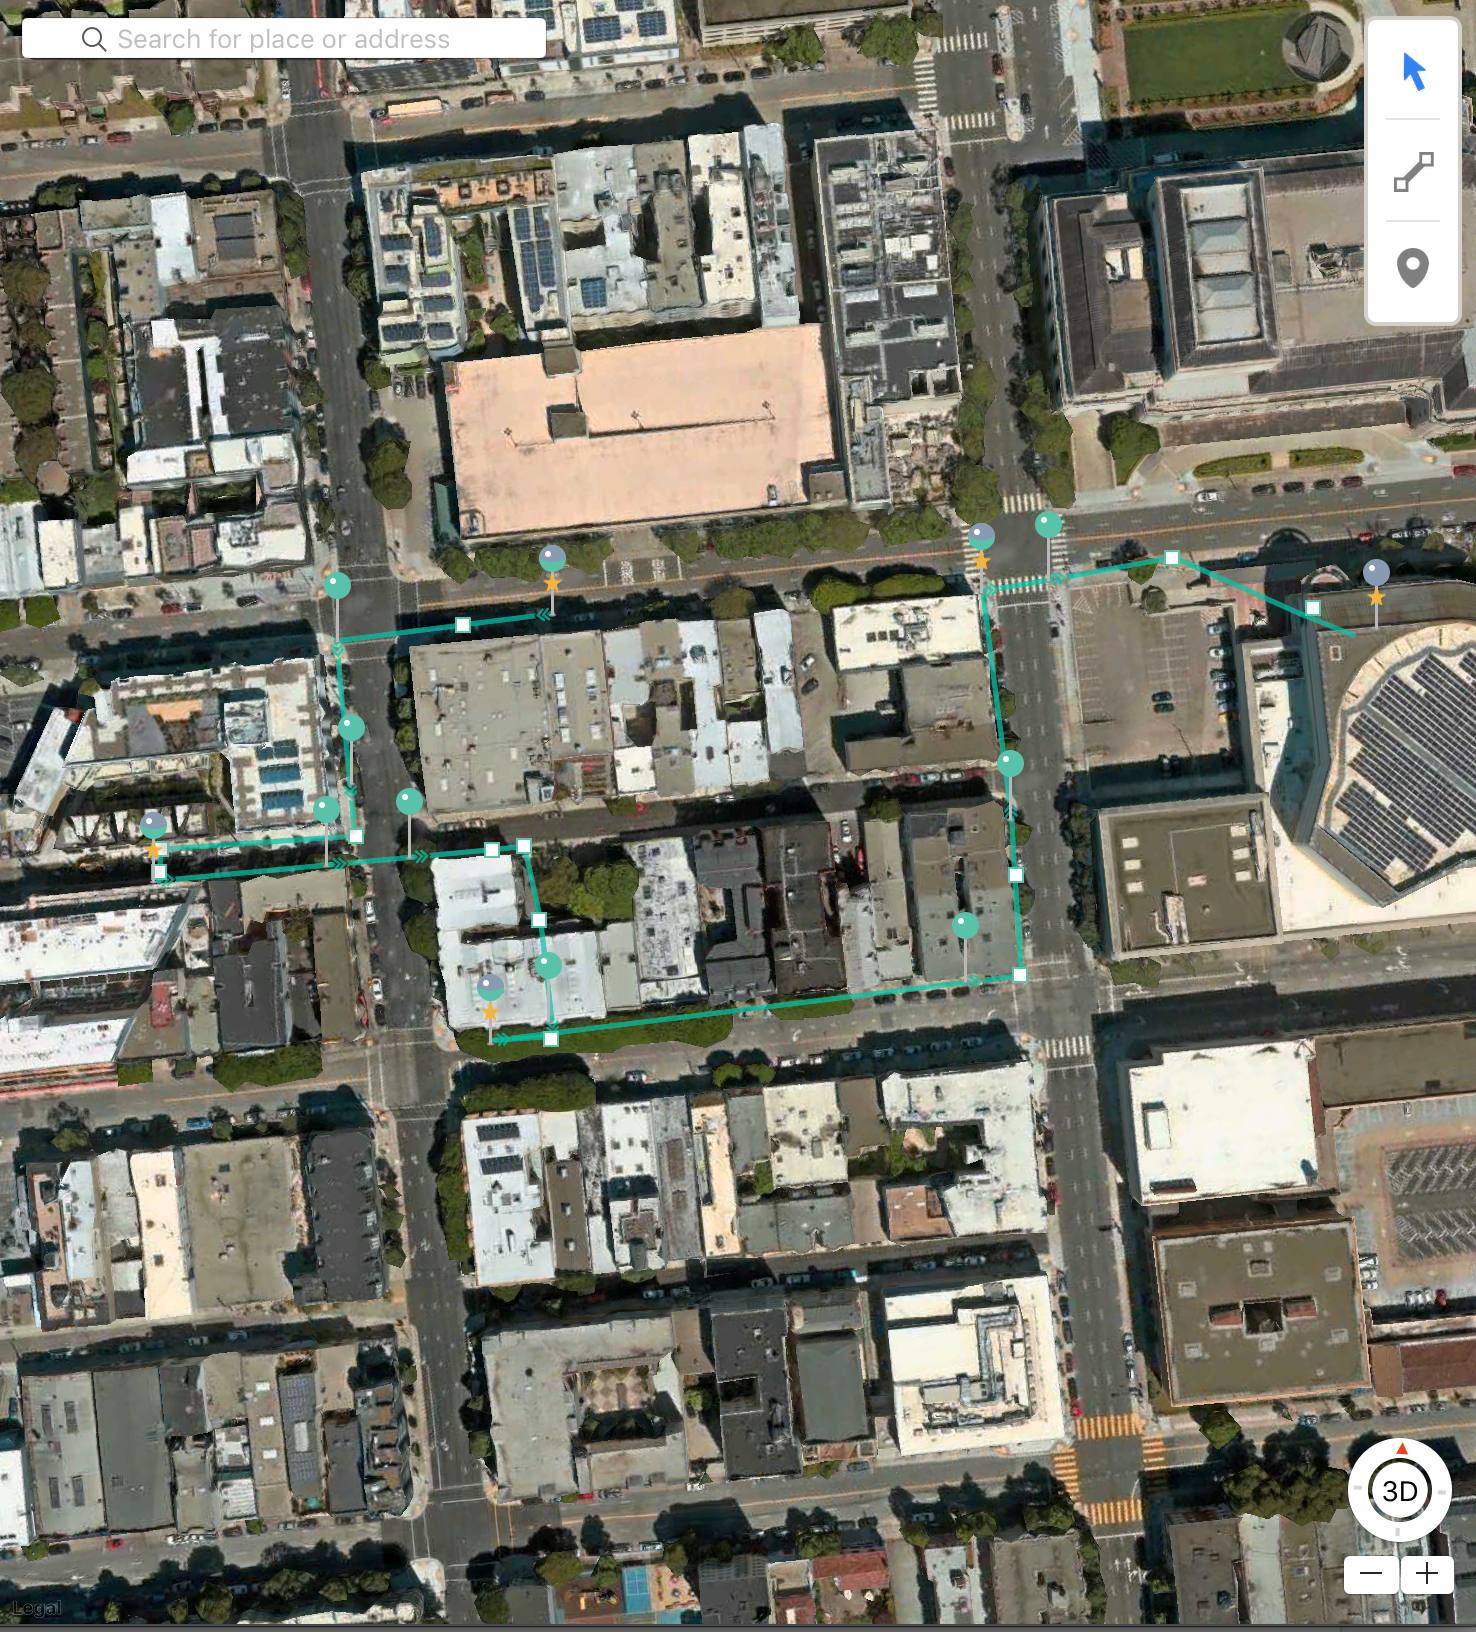 Map View - Interface Satellite Map View on manhattan view, nokia maps, aerial view, maps get directions, dubai street view, maps showing property lines, journey planner, maps google, maps latitude, maps that show property lines, route planning software, web mapping, google search, google earth, google voice, yahoo! maps, maps street, maps weather, maps and directions, satellite map images with missing or unclear data, google street view, street level driving view, google latitude, earth view, see your house street view, maps earth, google moon, bing maps platform, maps from mexico city, google map maker, google mars, google sky, bing maps,